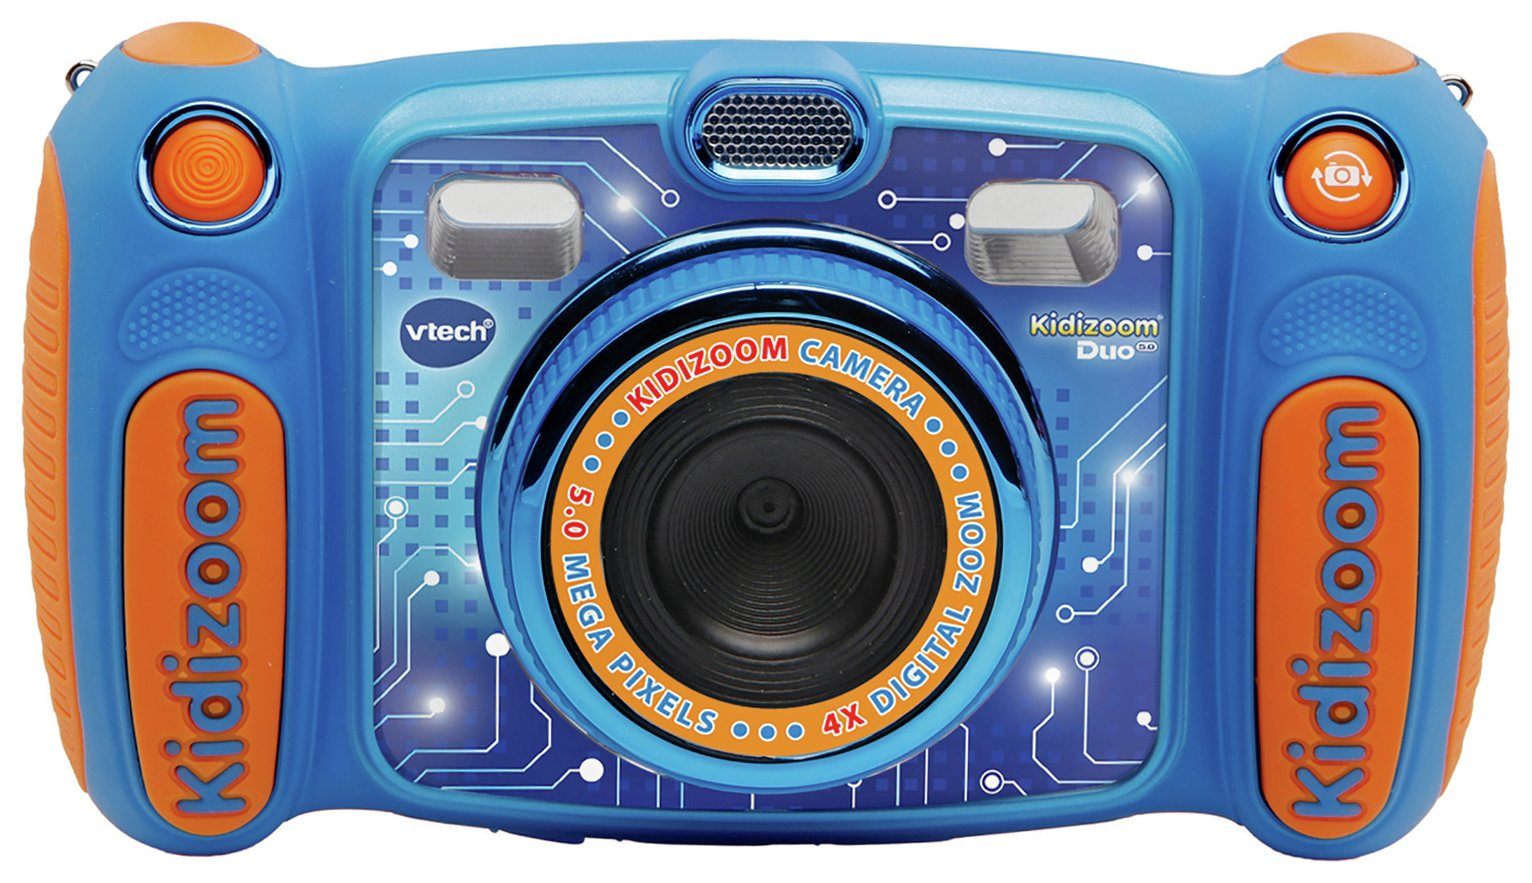 VTech Kidizoom 5MP Camera - Blue from VTech